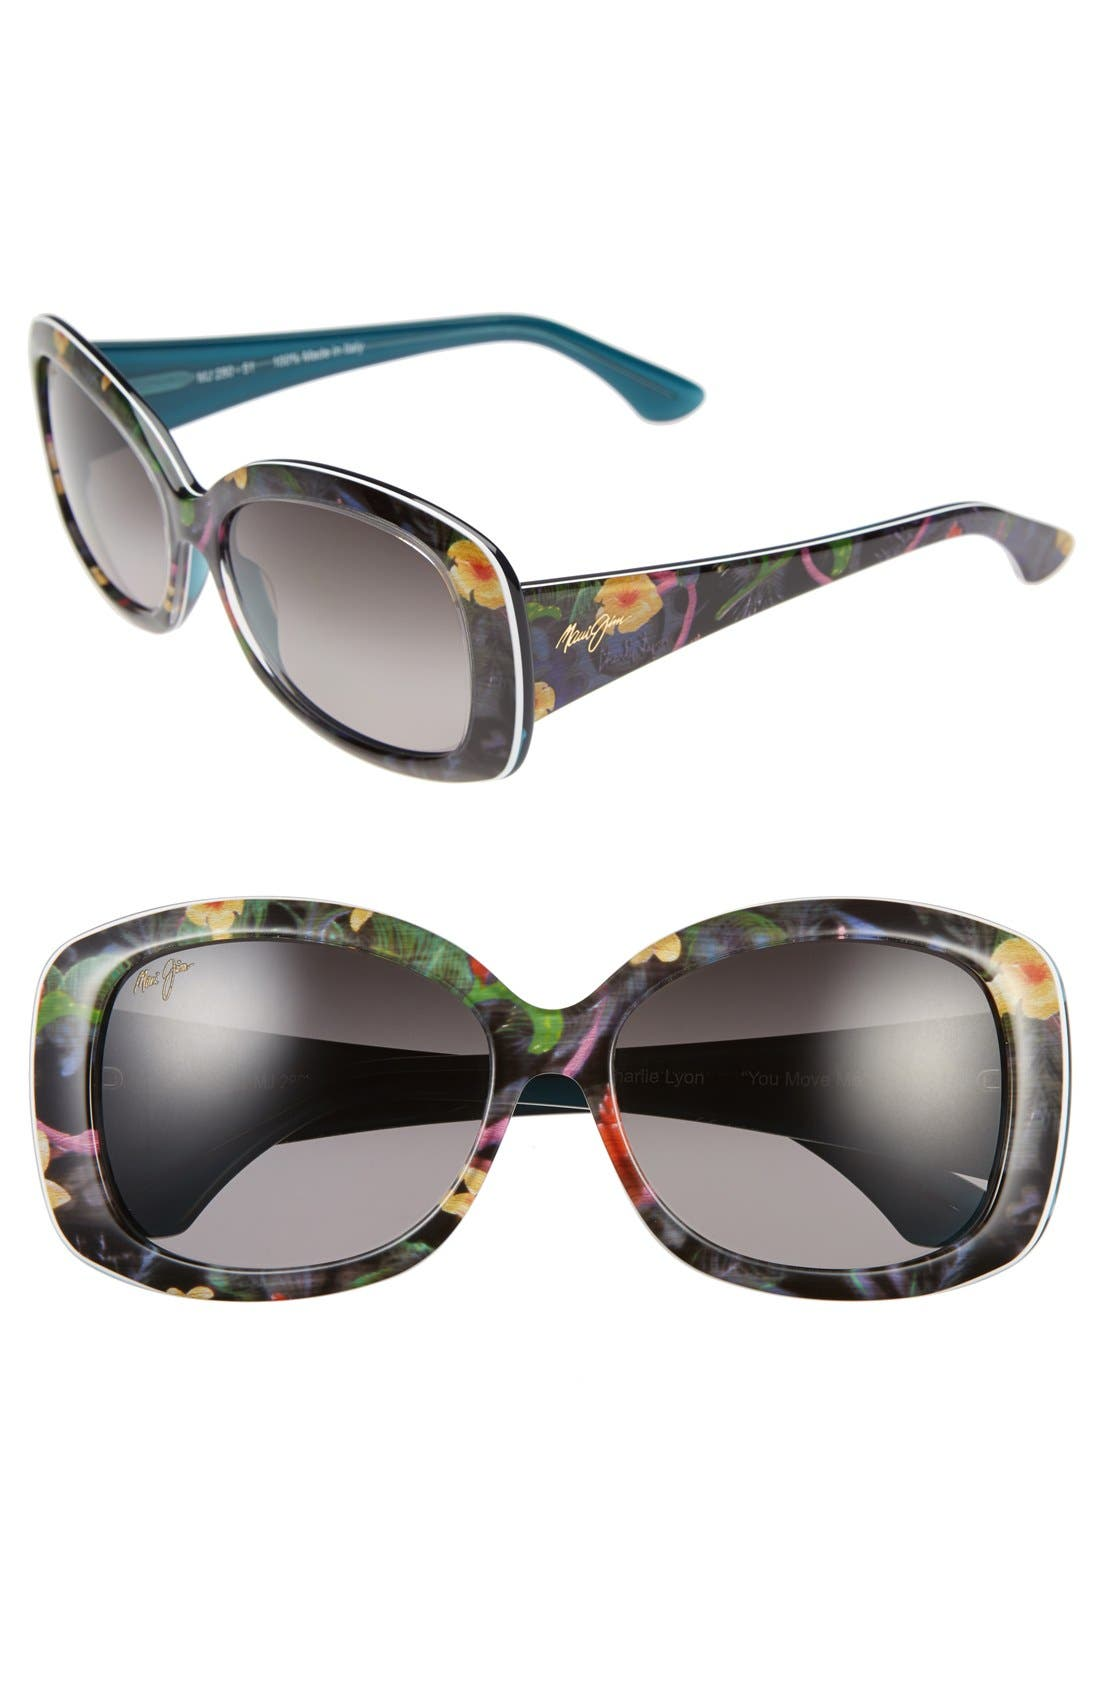 You Move Me 60mm PolarizedPlus2<sup>®</sup> Sunglasses,                         Main,                         color, Silk/ White/ Teal